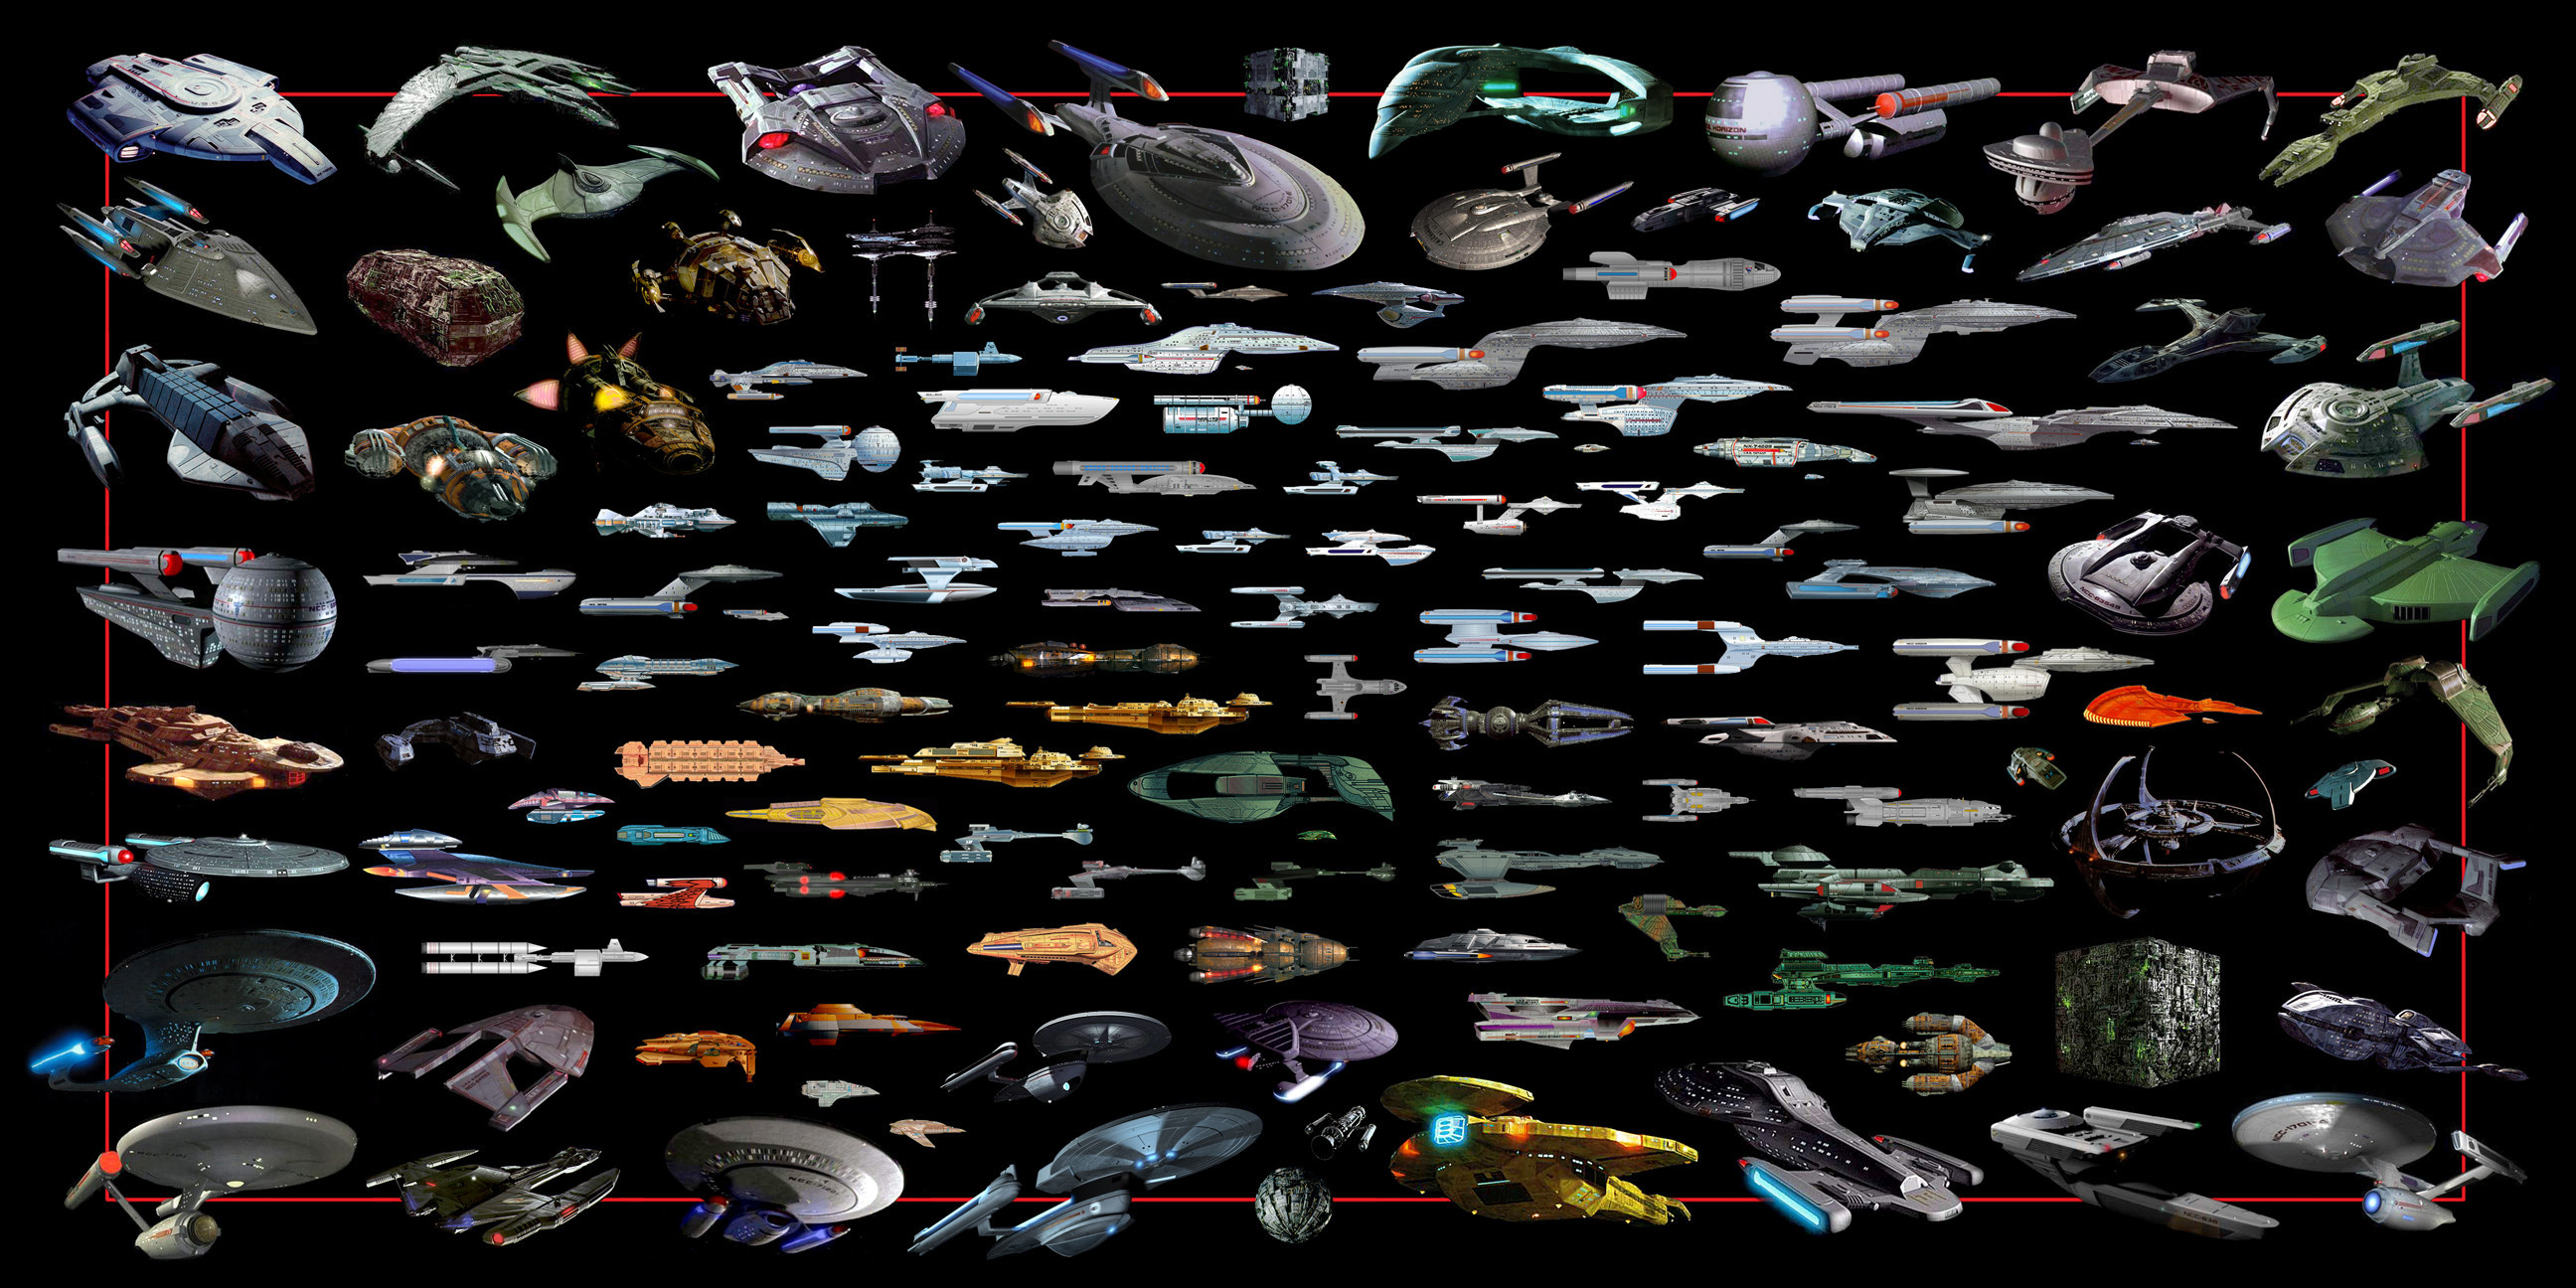 2592x1296  33 Enterprise (Star Trek) HD Wallpapers | Backgrounds - Wallpaper  Abyss